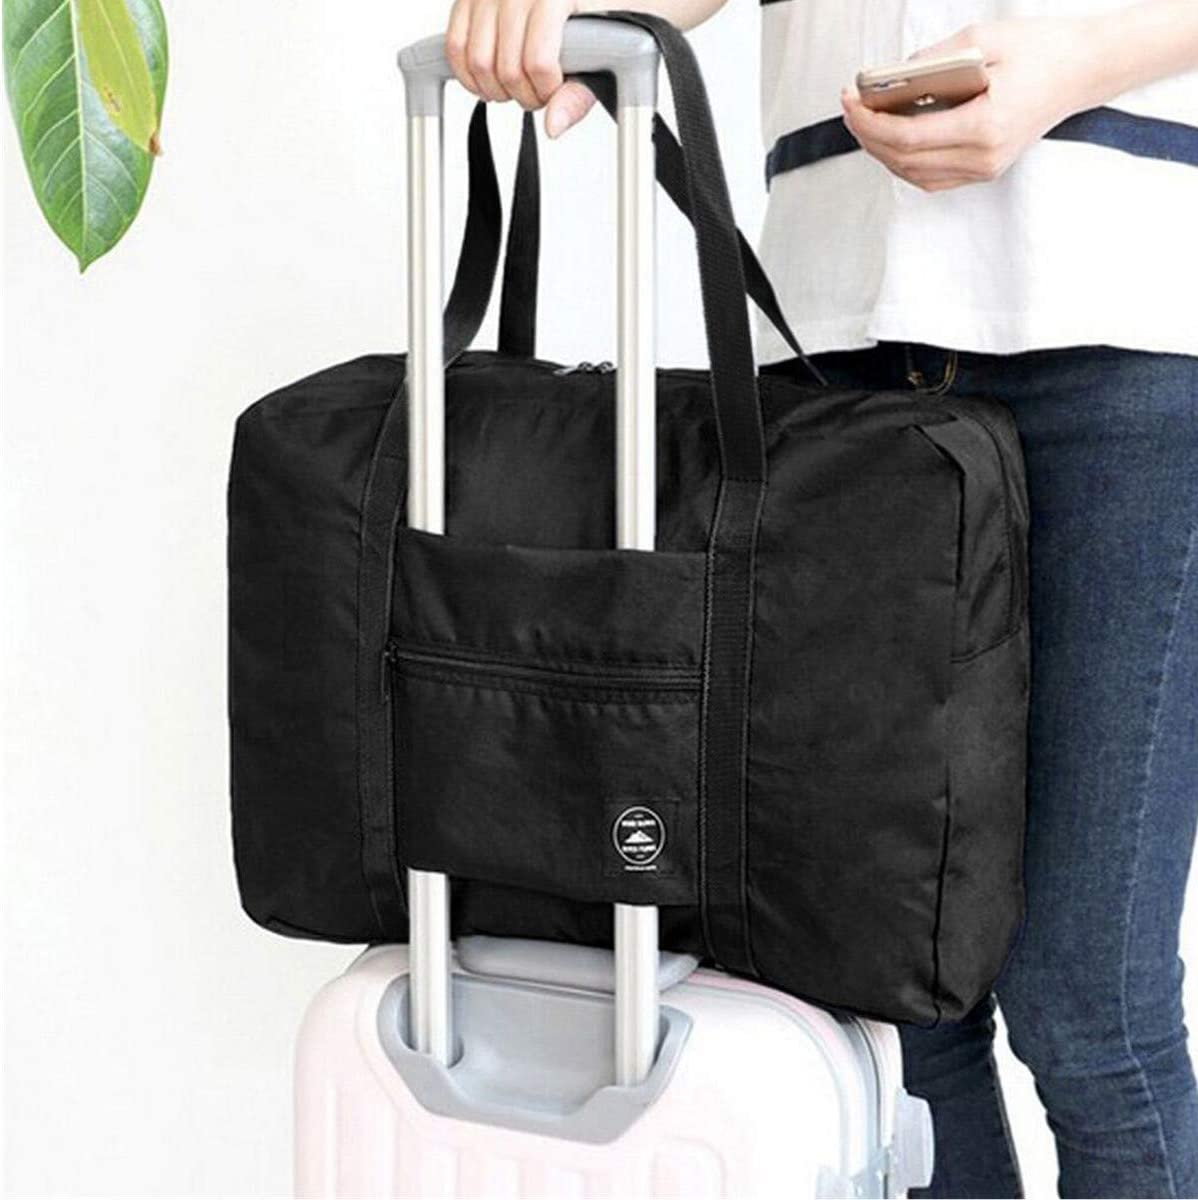 Foldable Travel Duffel Bag Tote Carry on Luggage Sport Duffle Weekender Overnight for Women and Girls Black